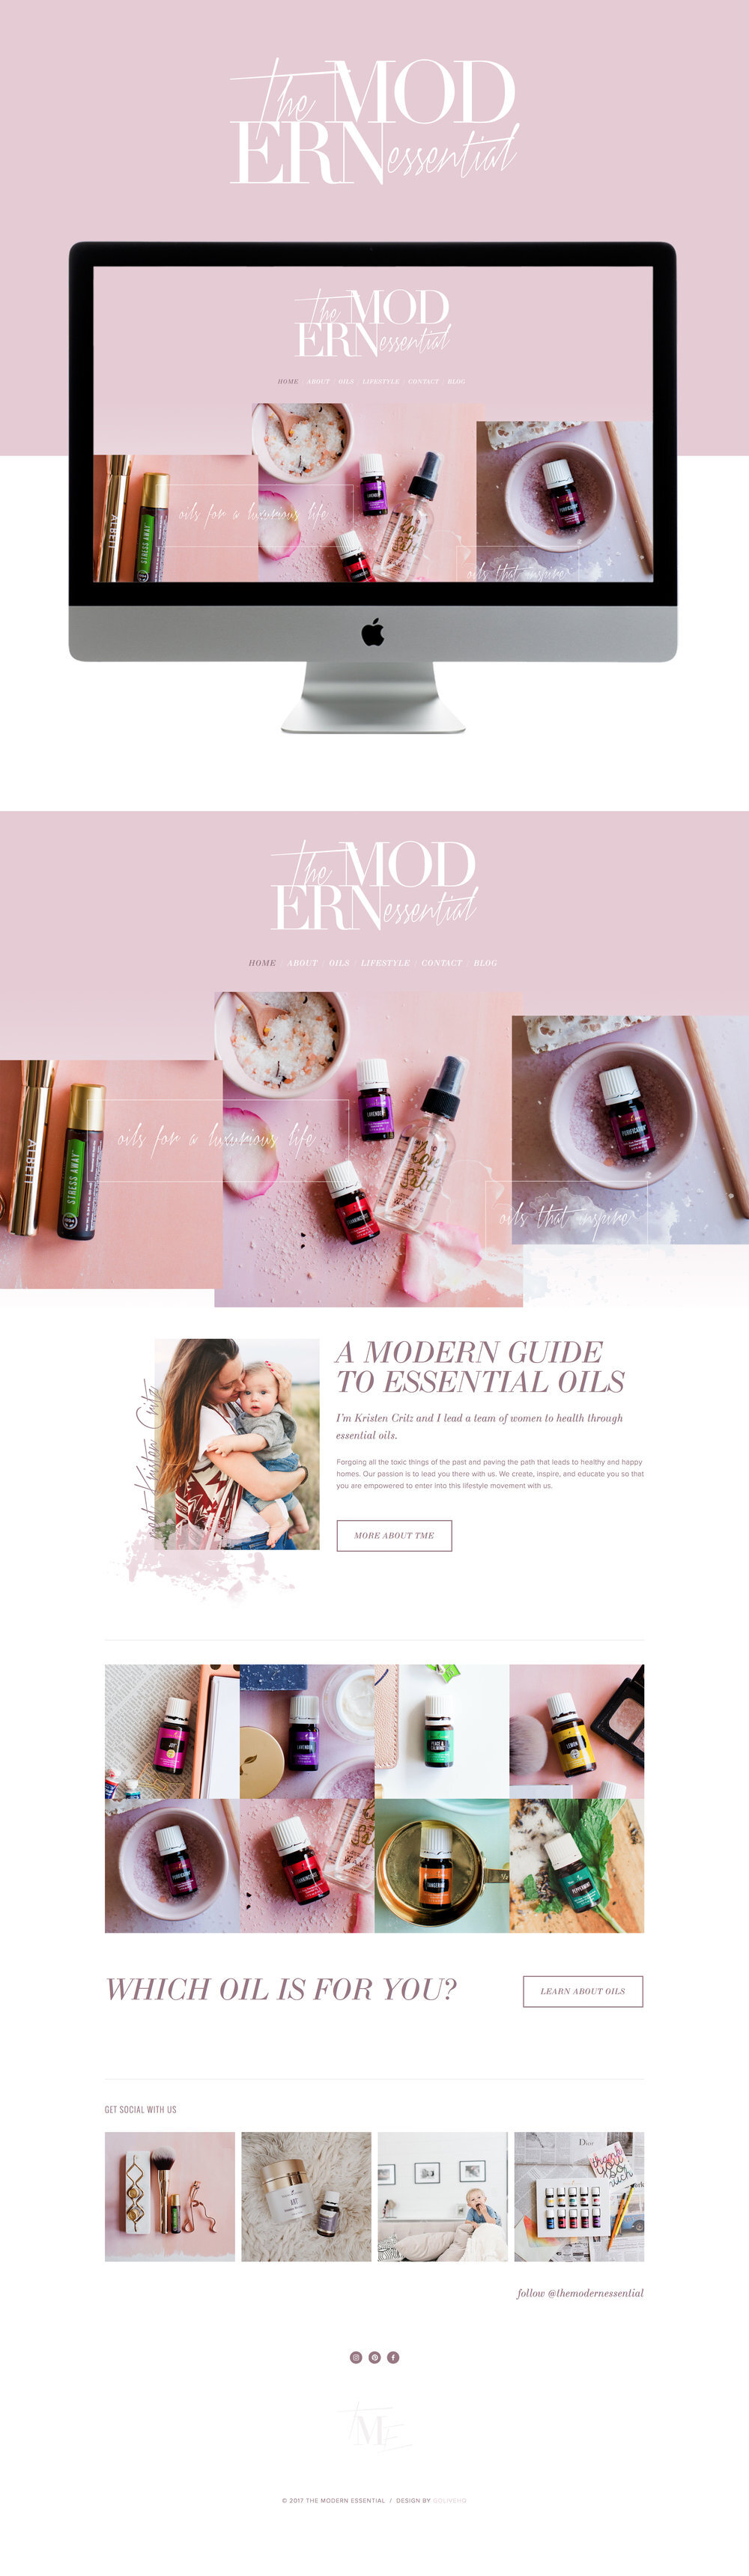 fashionable,+clean+&+whimsical+squarespace+website+design+_+designed+by_+golivehq (1).jpg